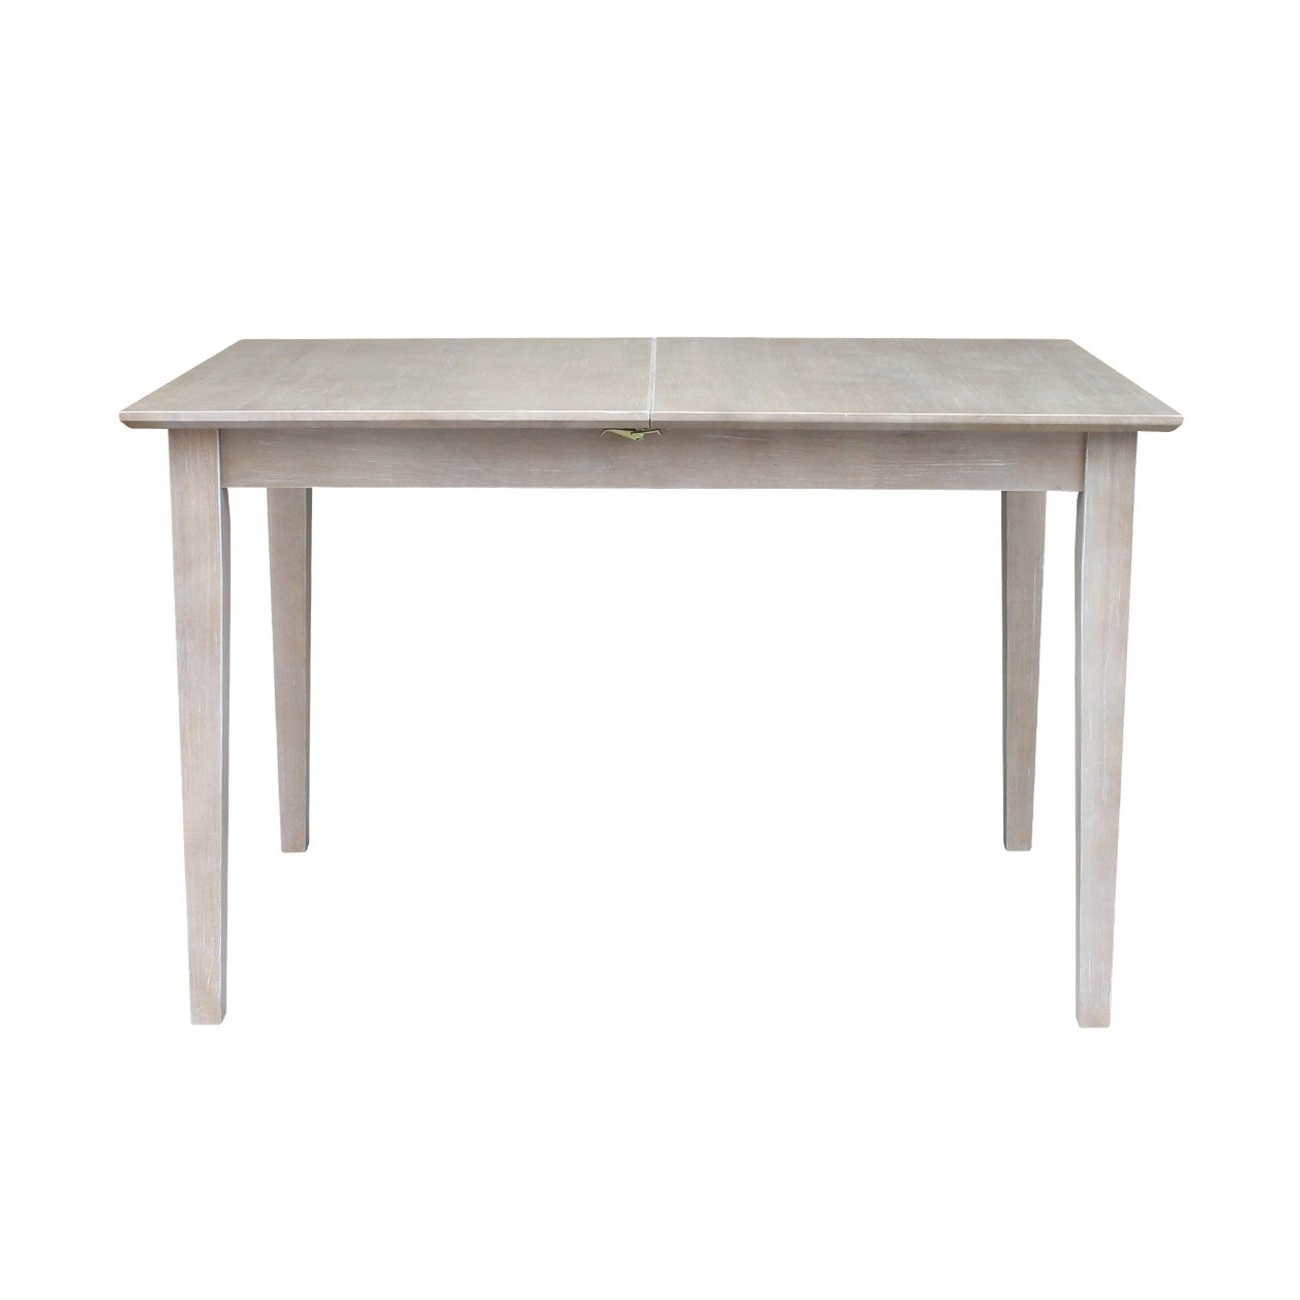 Current Table With Butterfly Extension – Washed Gray Taupe – Washed Gray Taupe In Gray Wash Benchwright Extending Dining Tables (View 11 of 25)